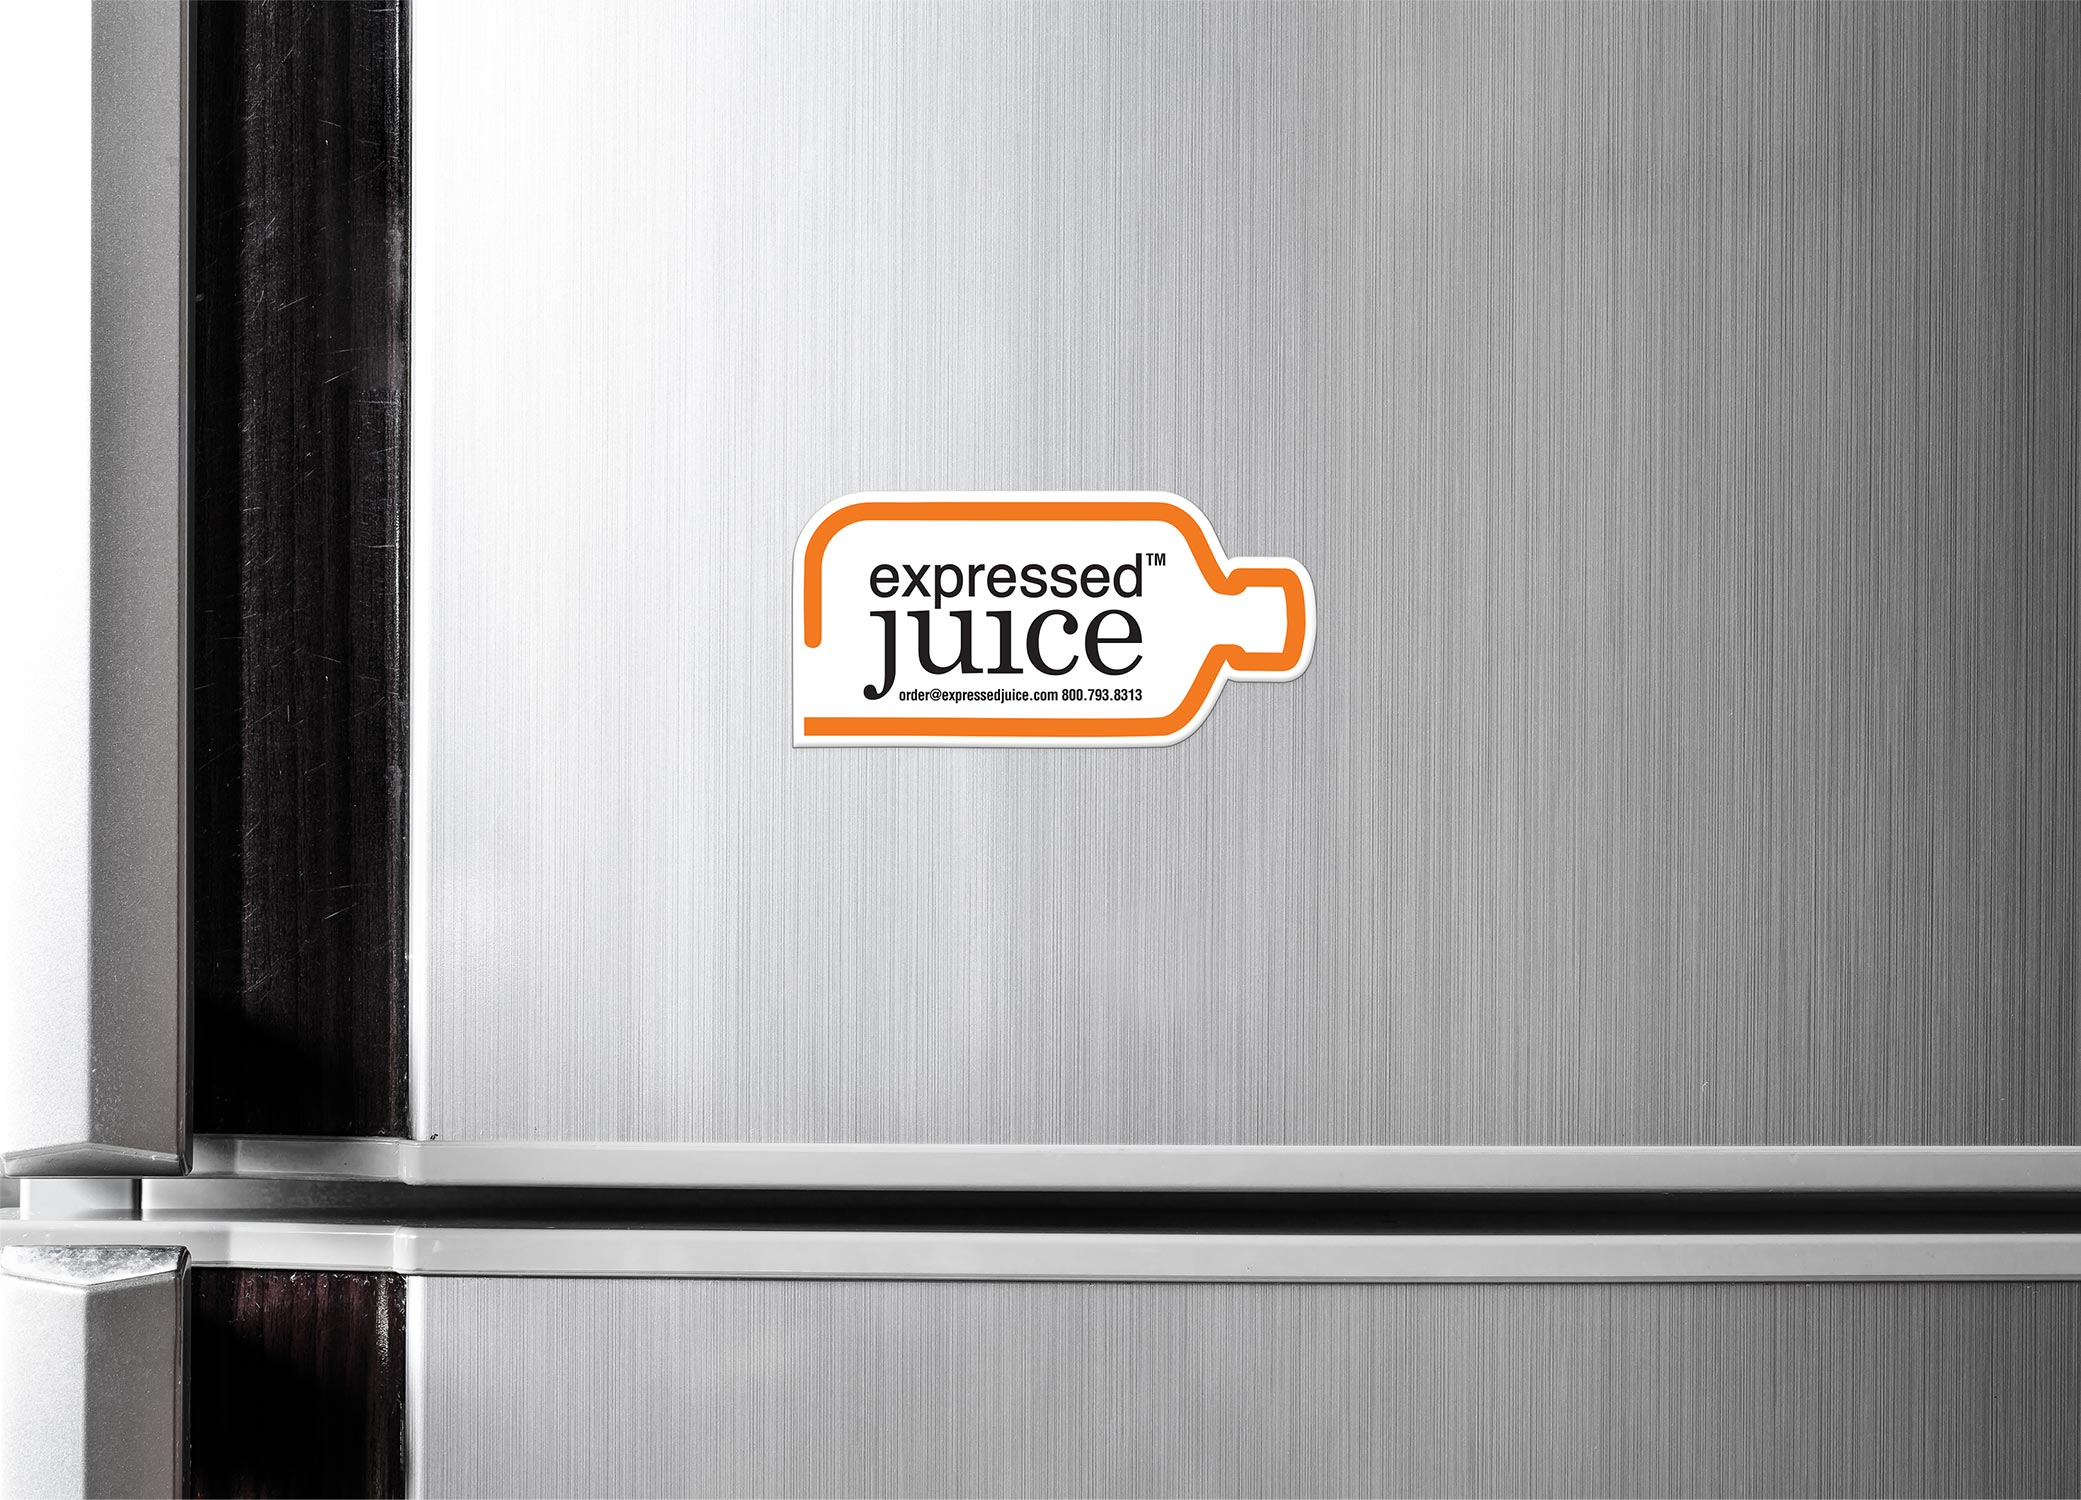 Expressed Juice magnet displayed on stainless steel refrigerator with logo and orange outline of a bottle shape.